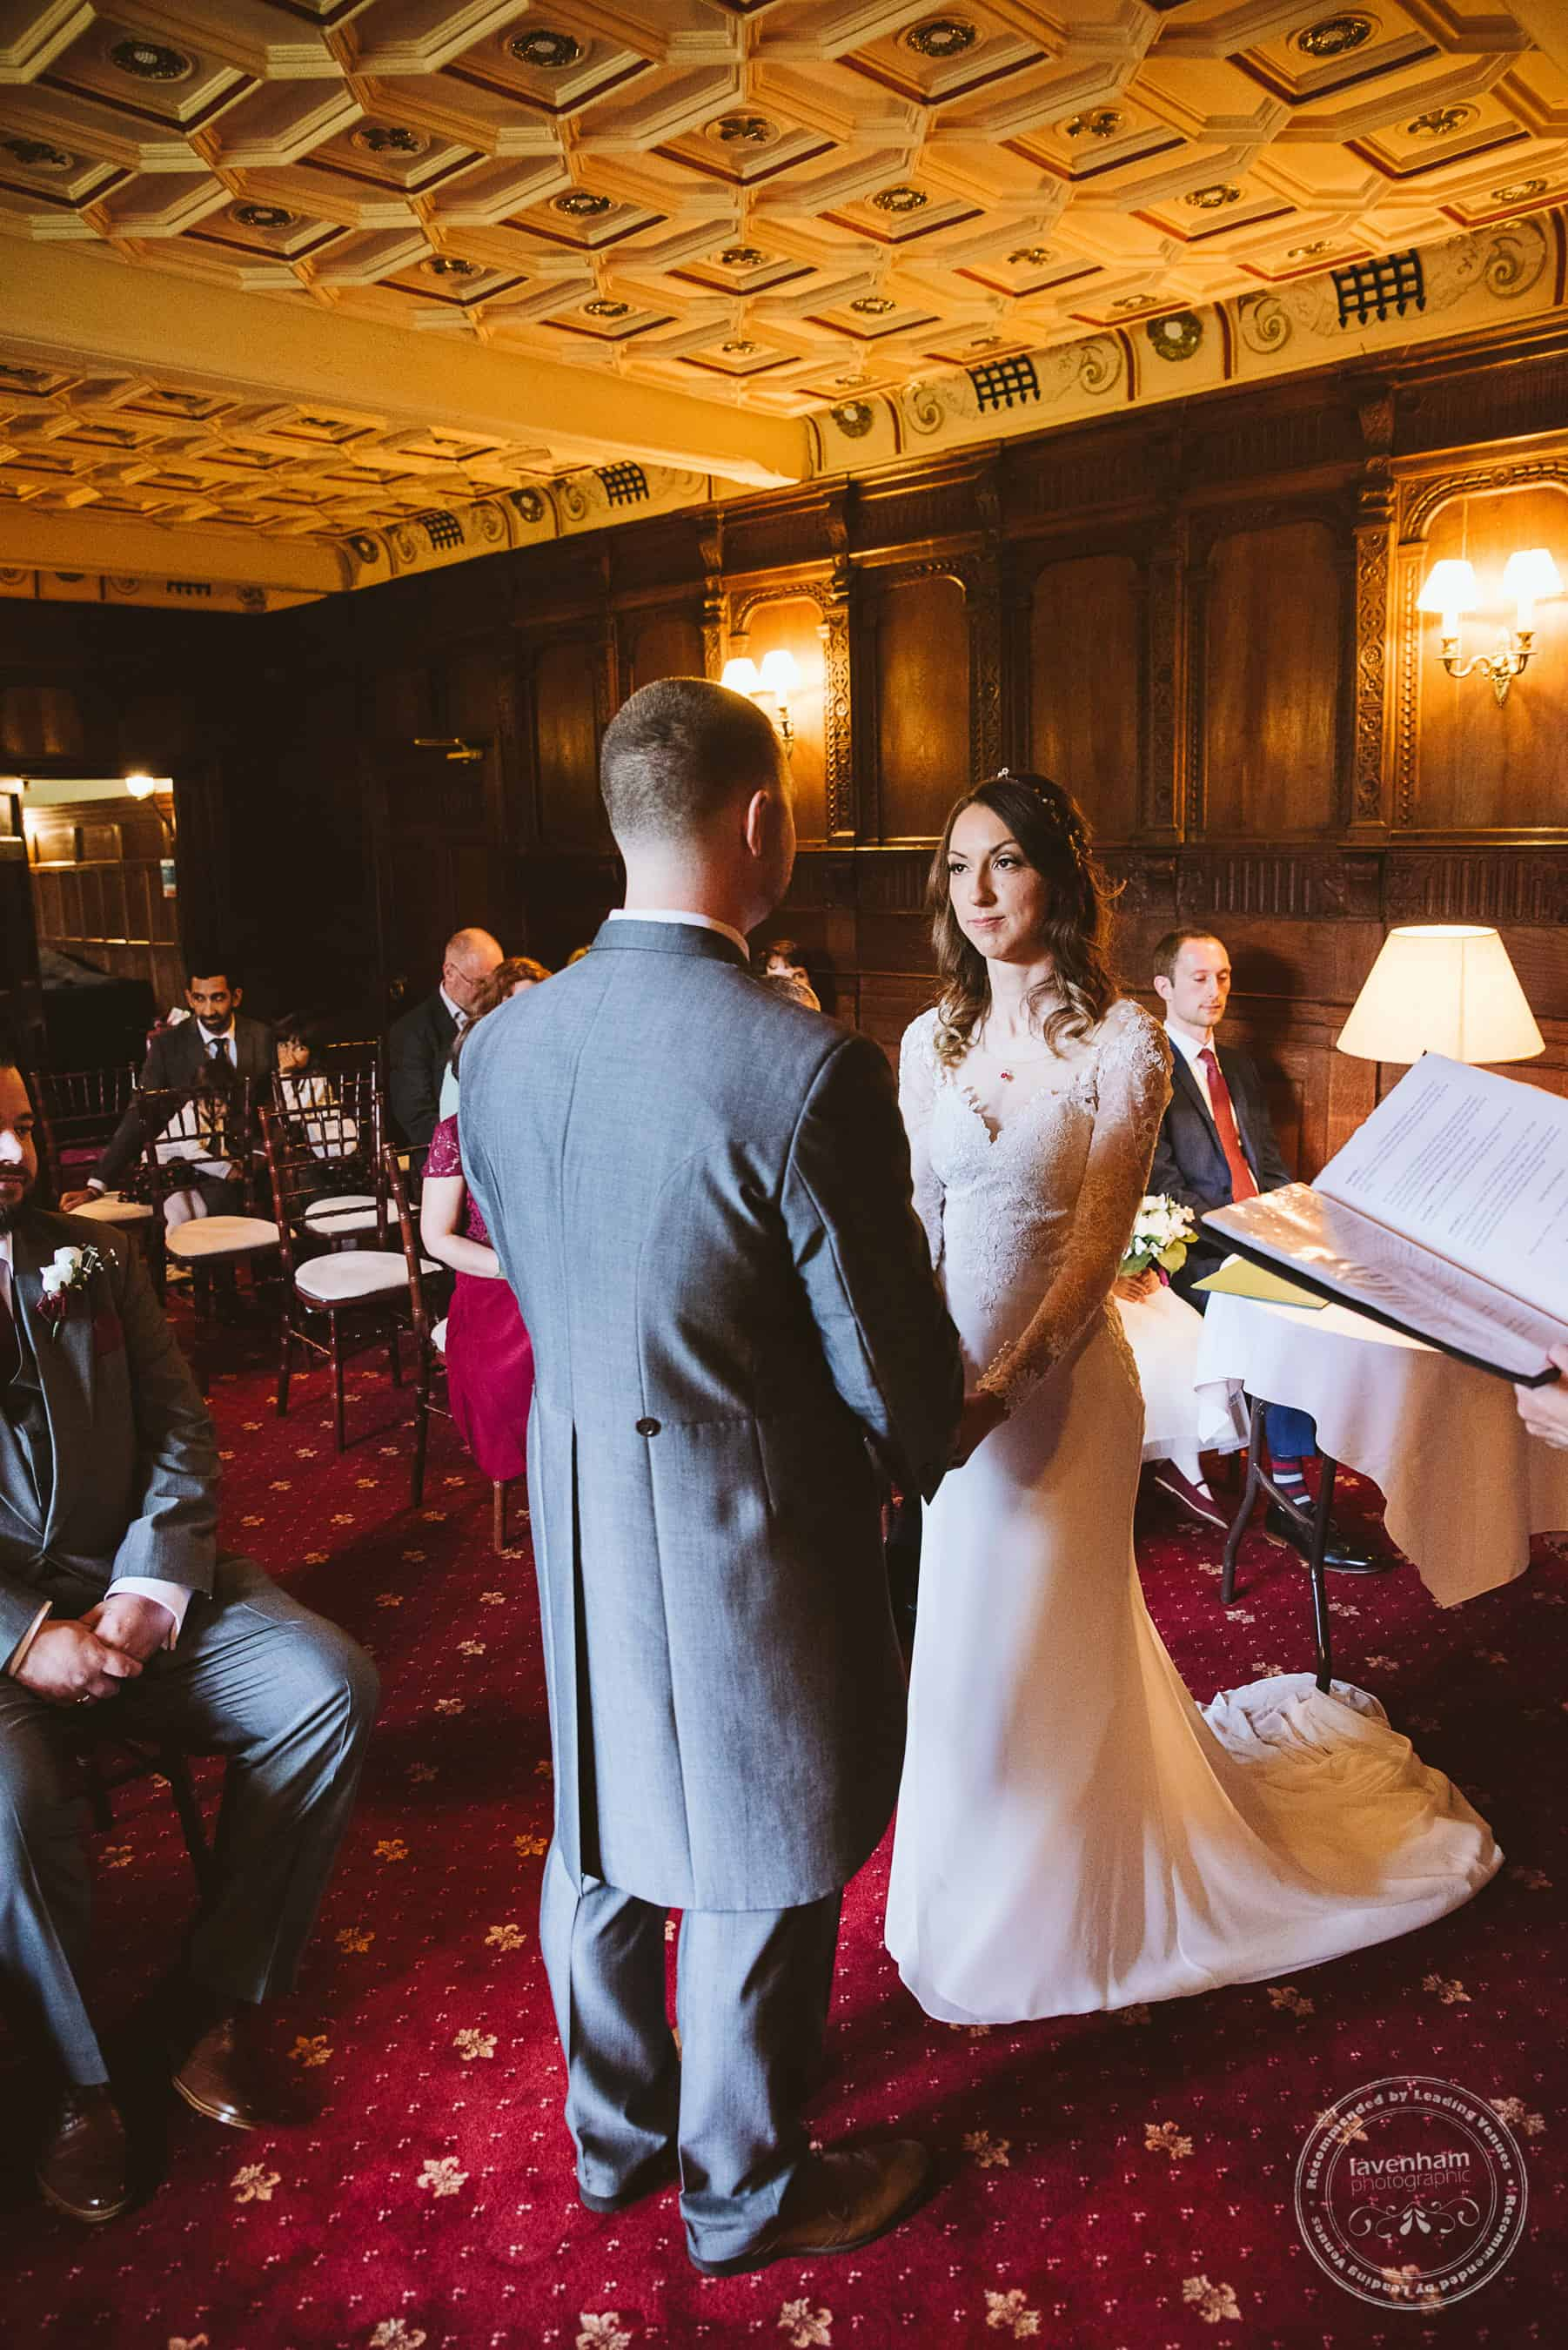 041118 Woodhall Manor Wedding Photography by Lavenham Photographic 038